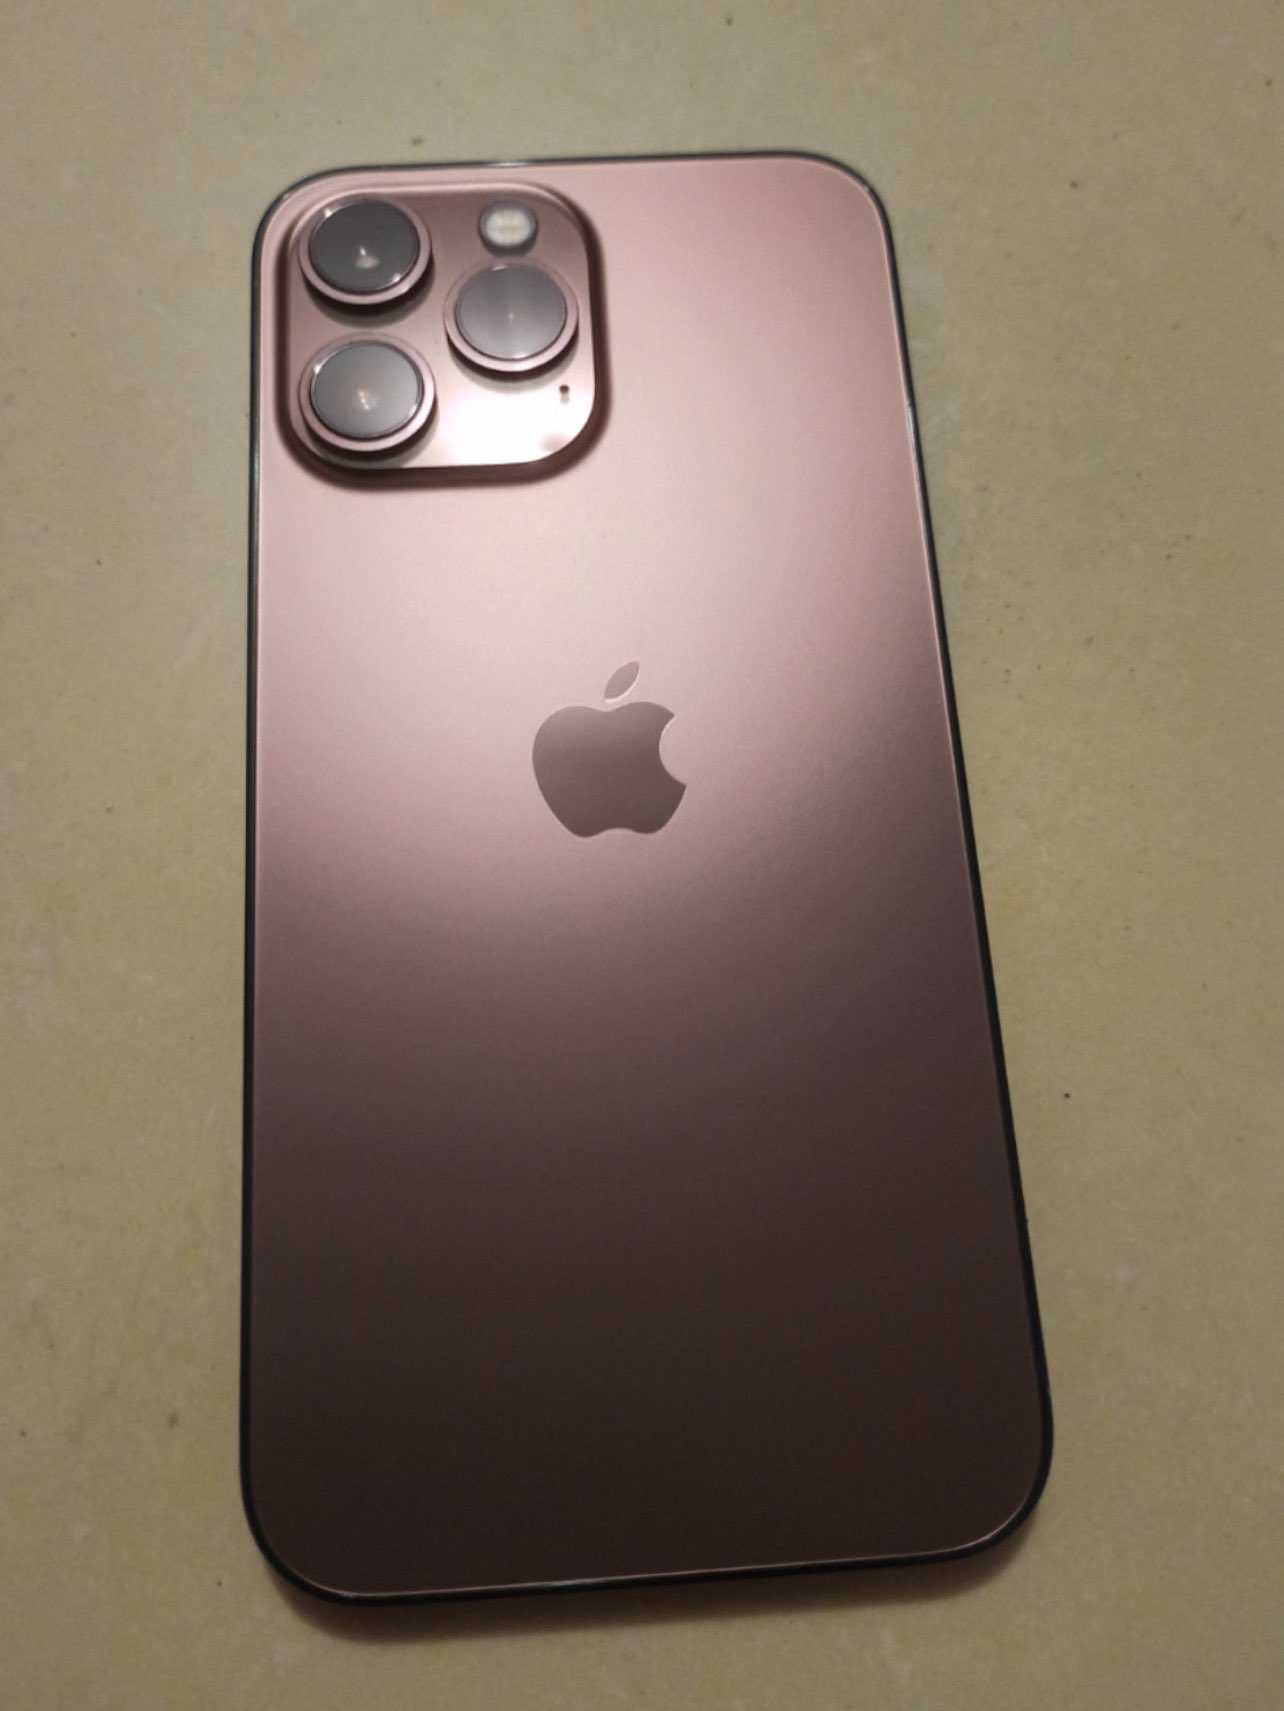 Suspected Prototype of iPhone 13 Pro in Rose Gold Color